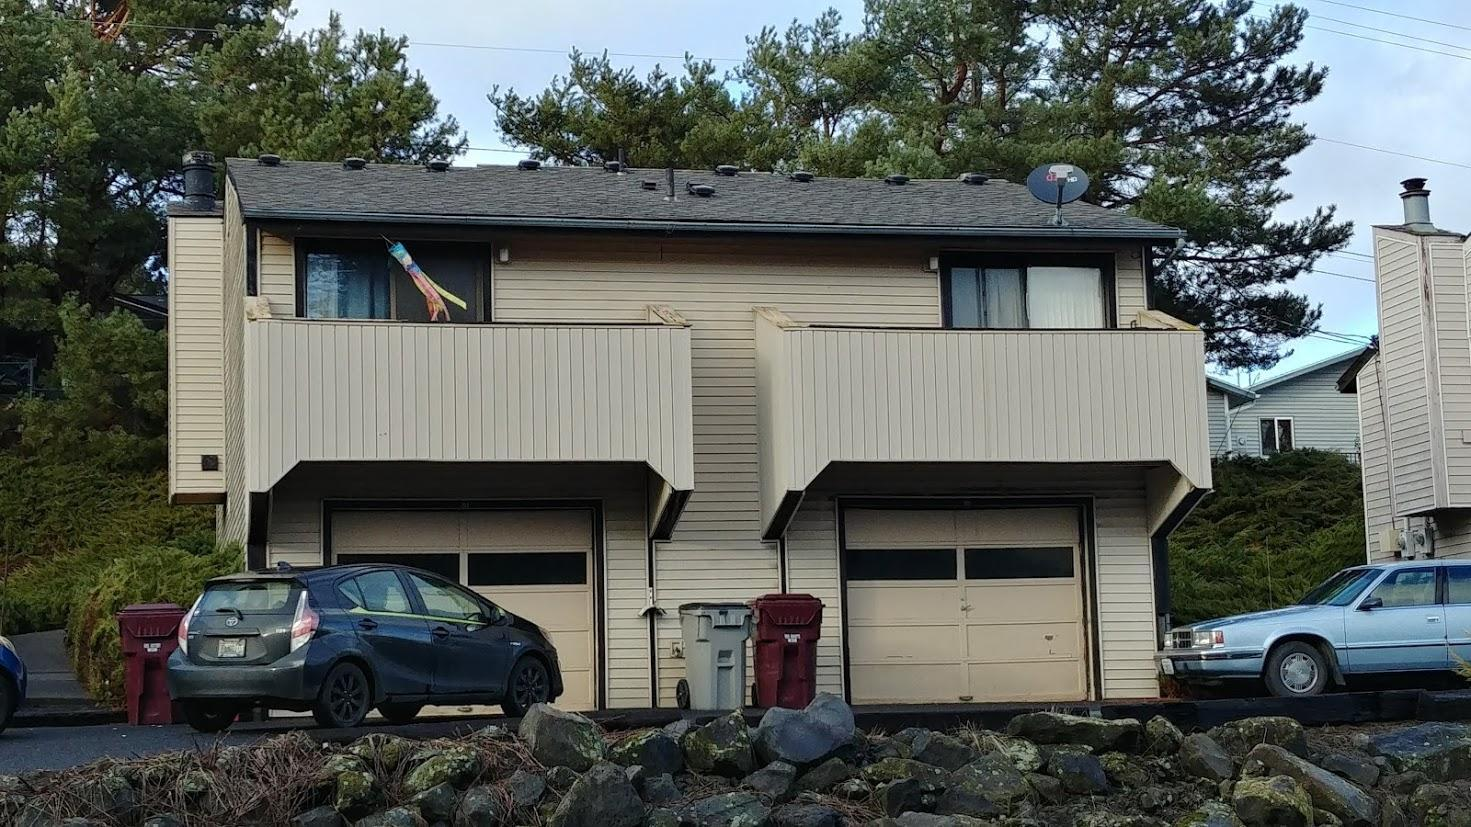 130 NW Larry St For Rent - Pullman, WA | Trulia